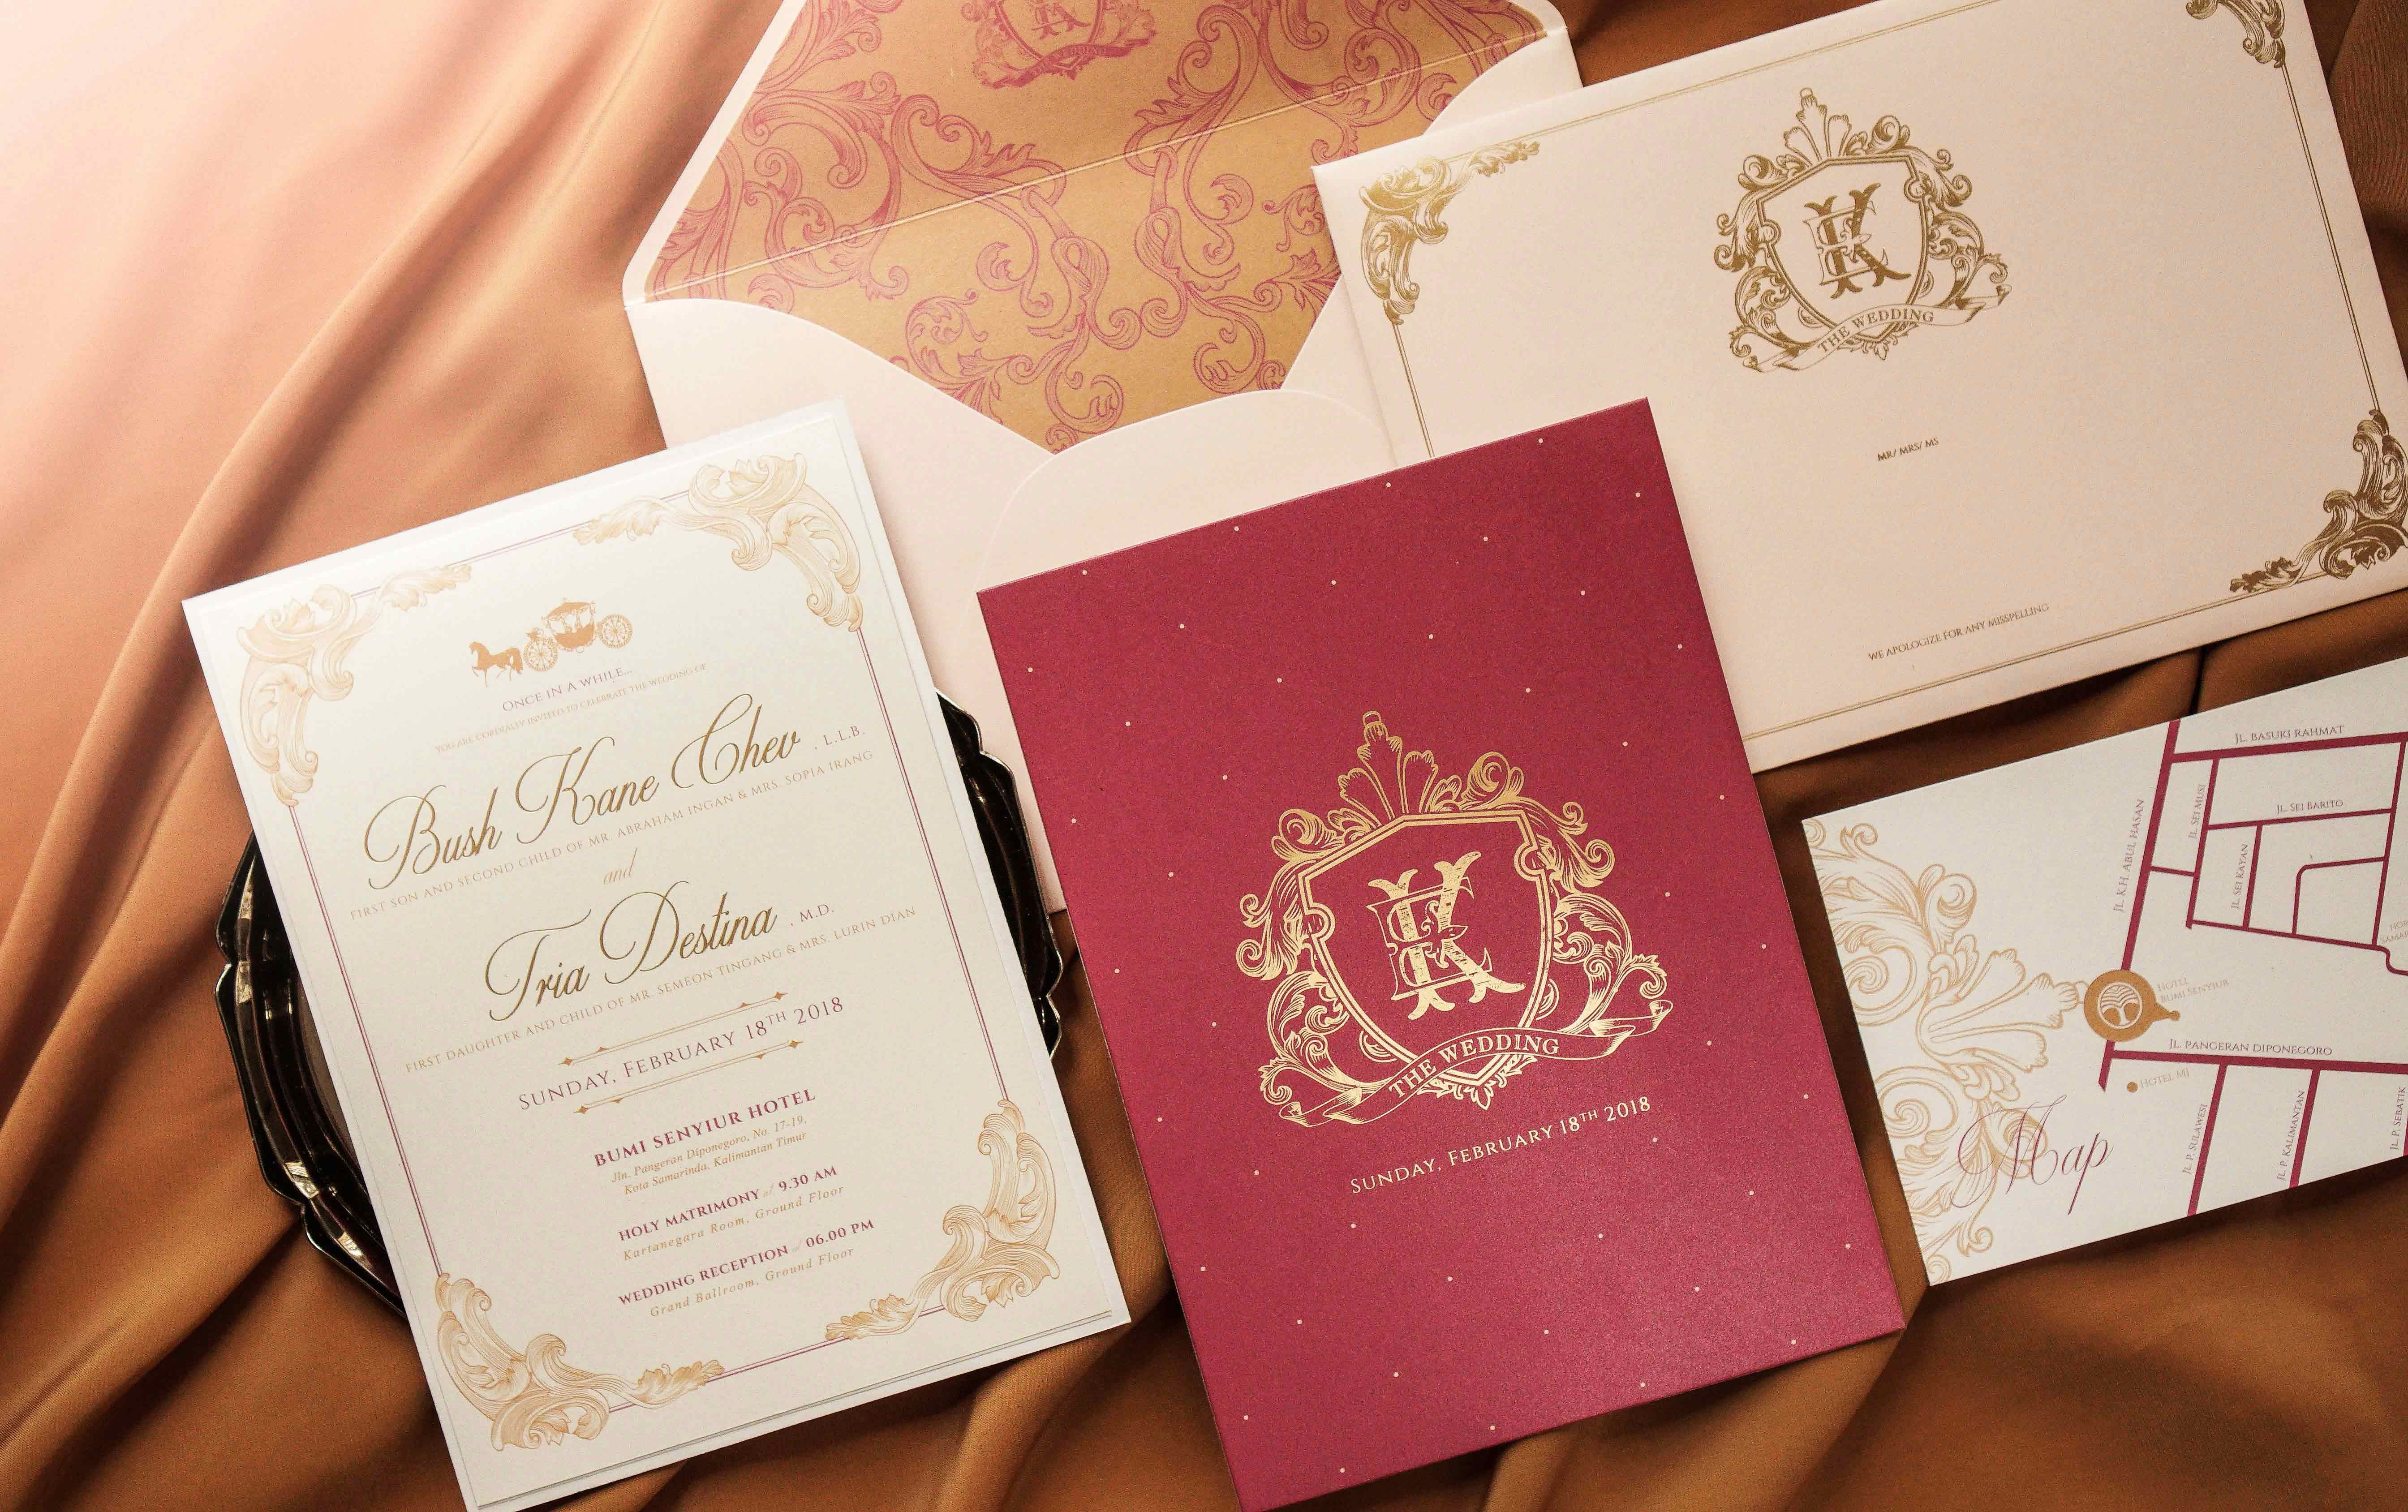 Memento Idea | Wedding Invitations in Jakarta | Bridestory.com